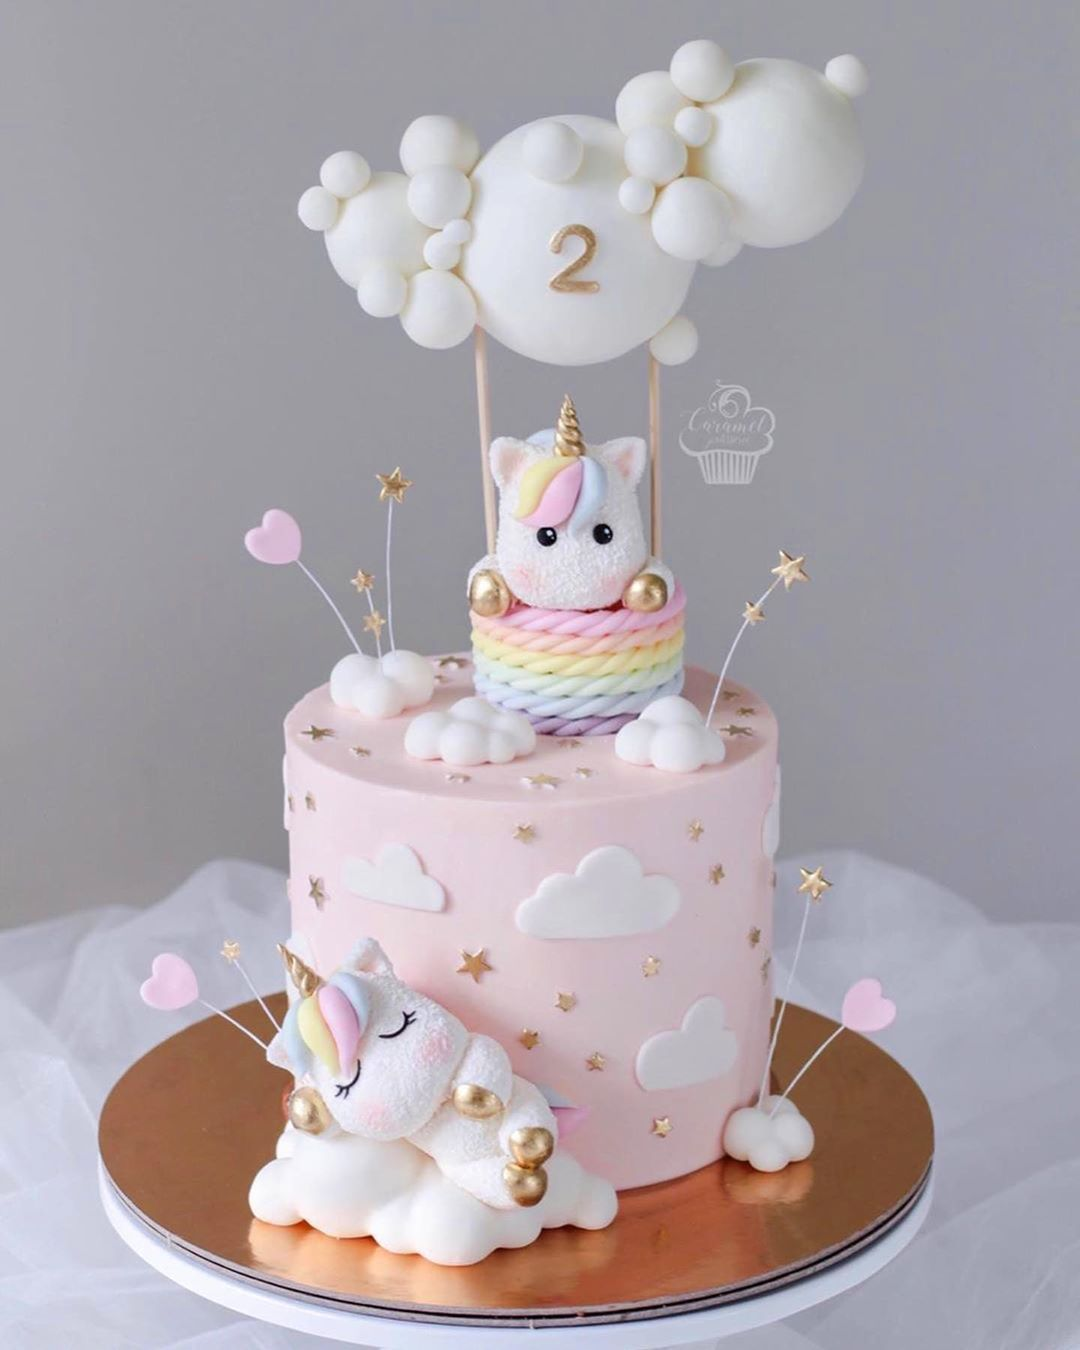 Tastymolds On Instagram Look At This Masterpiece By Caramel Patisserie Swipe For Baby Birthday Cakes Unicorn Birthday Cake Beautiful Birthday Cakes